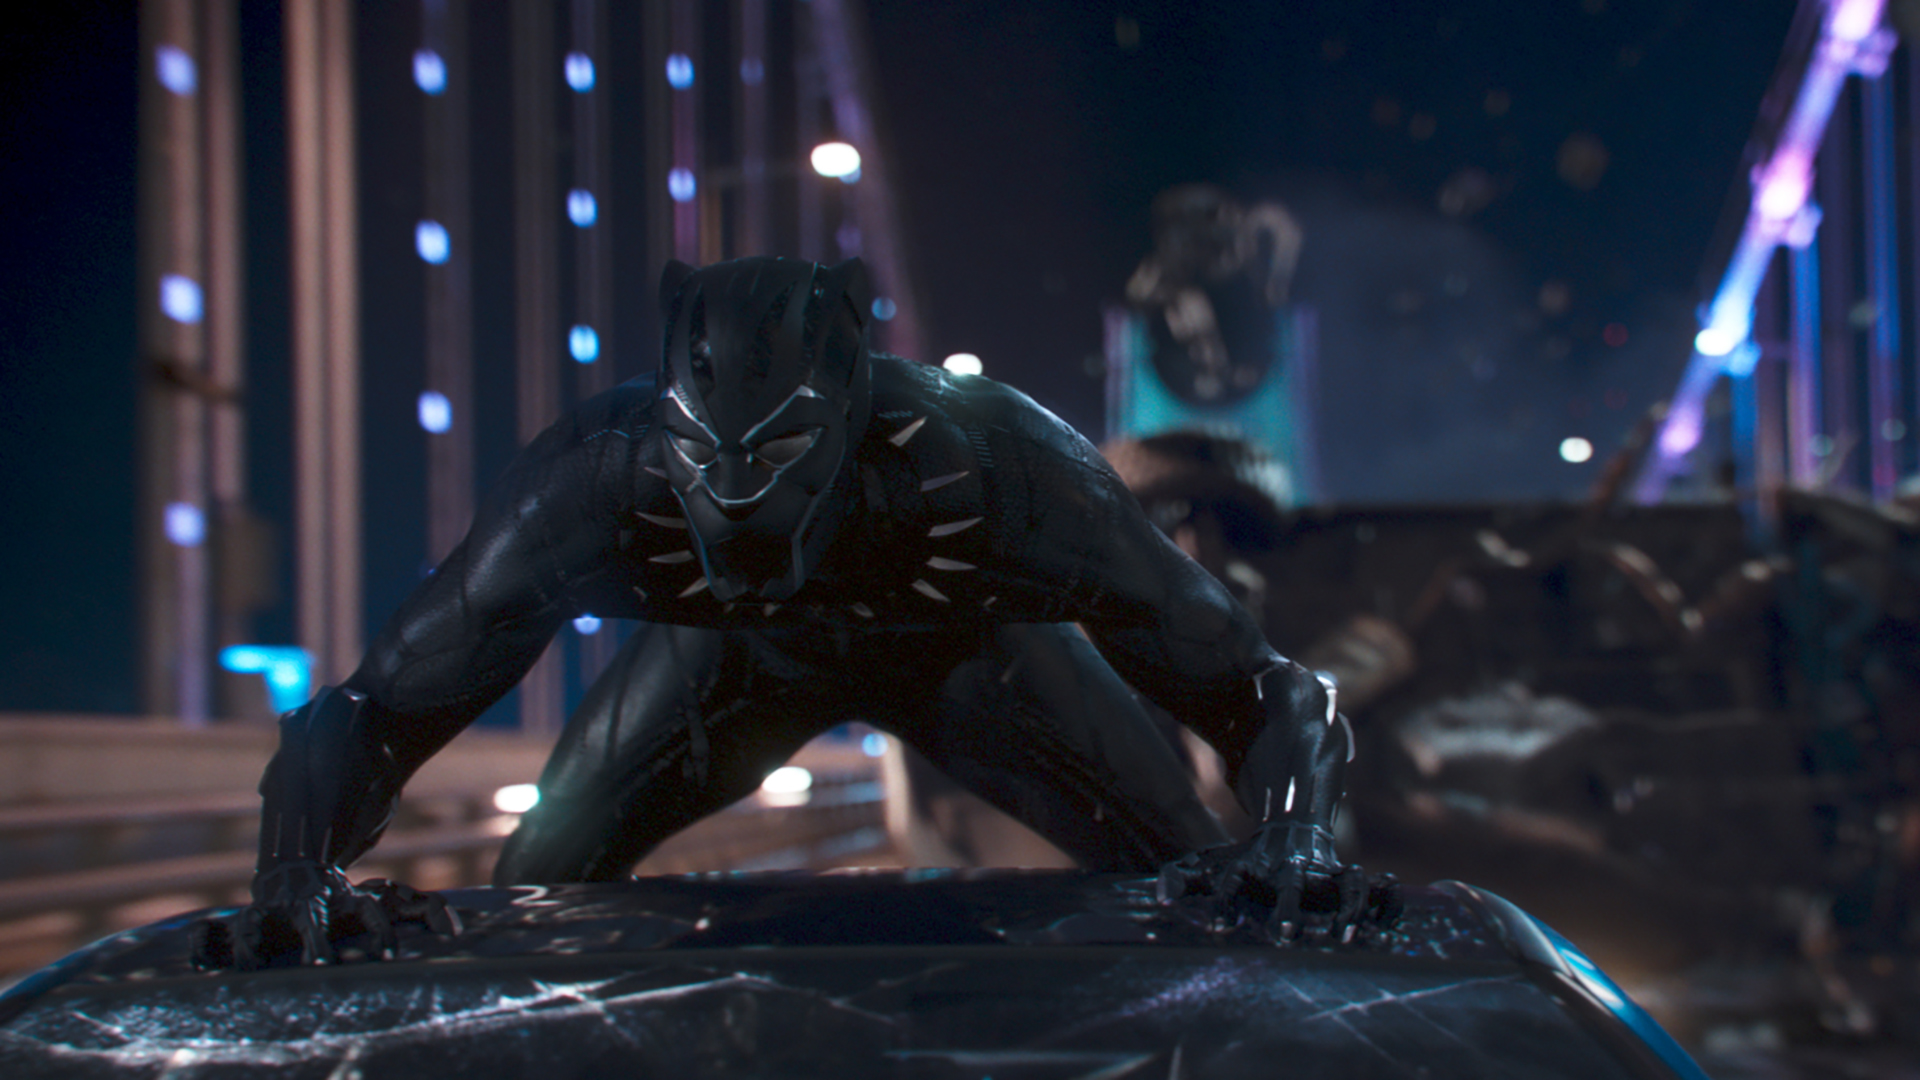 Movie review: 'Black Panther' roars on the big screen